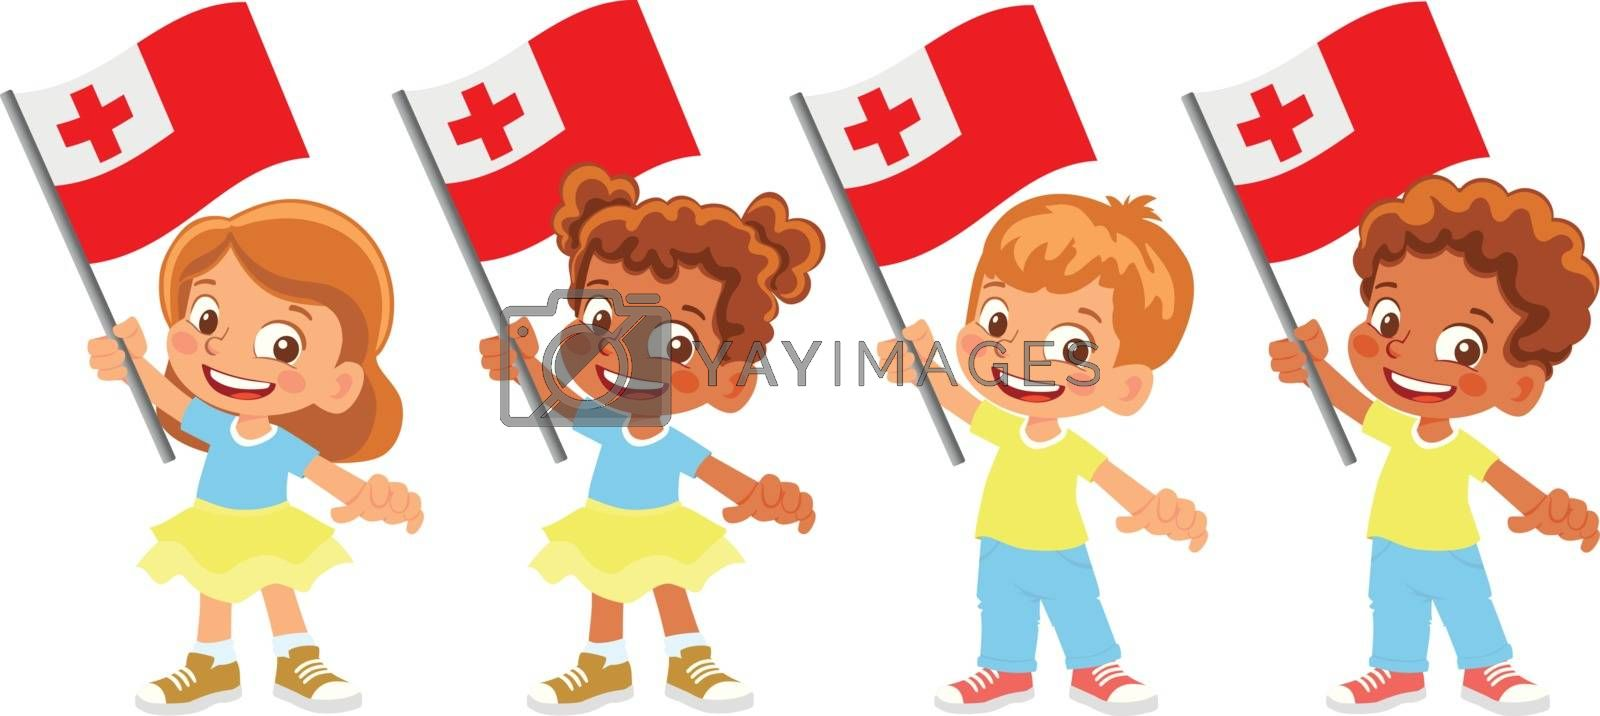 Tonga flag in hand set by Visual-Content